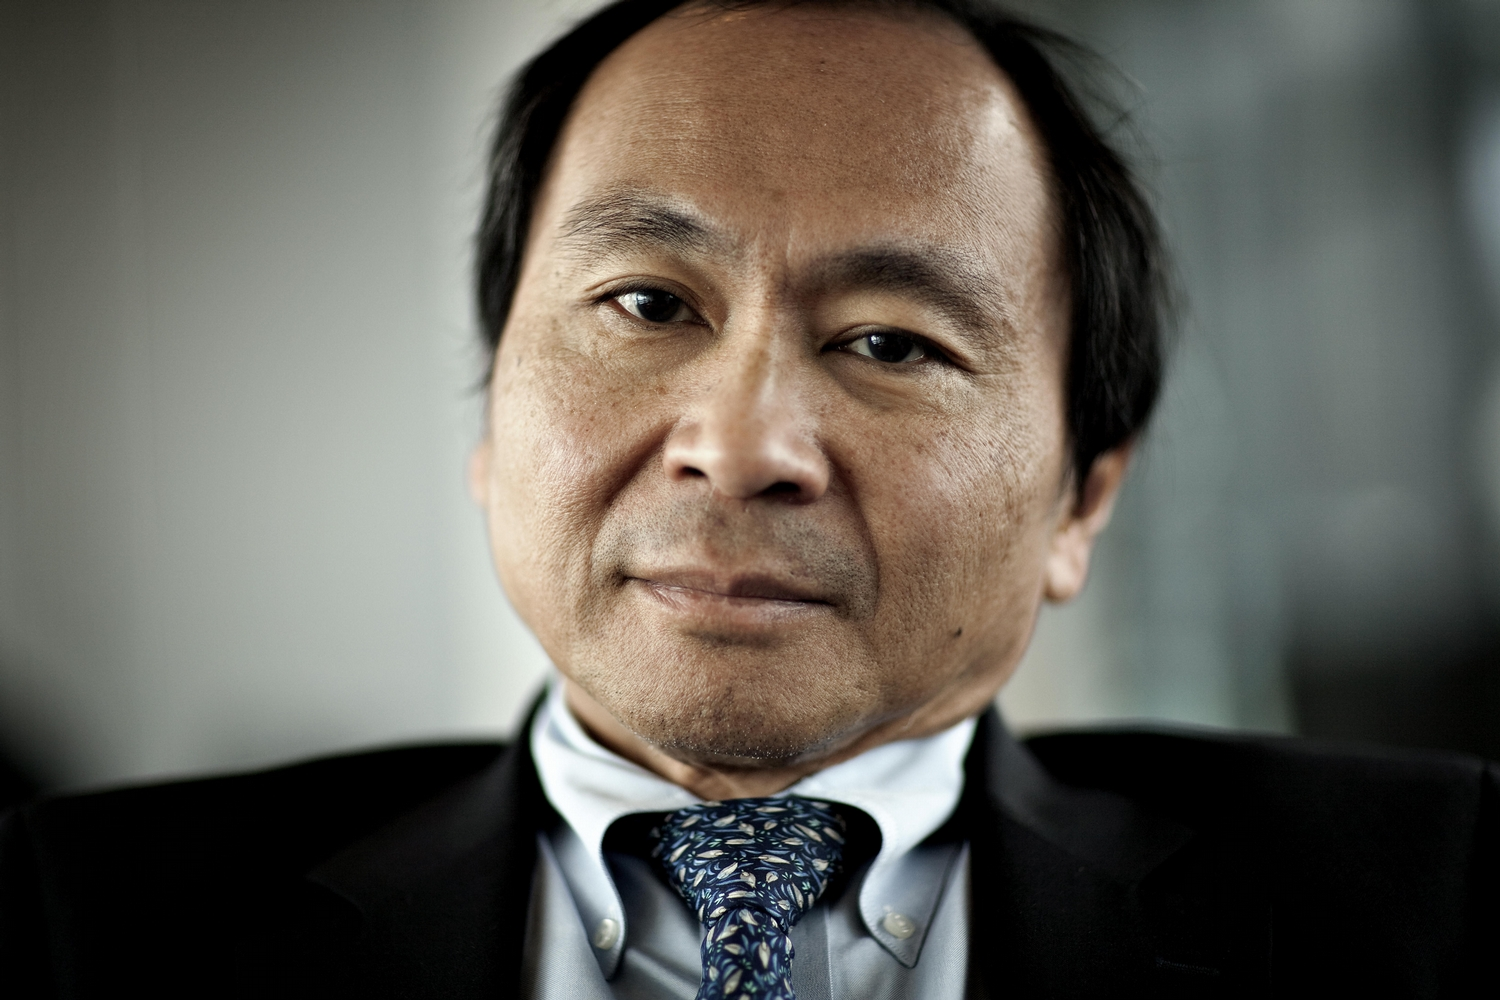 francis fukuyama the end of history essay The origins of political order by francis fukuyama essay - what historical  the rise and fall of ideologies in fukuyama´s the end of history essay - in his essay.